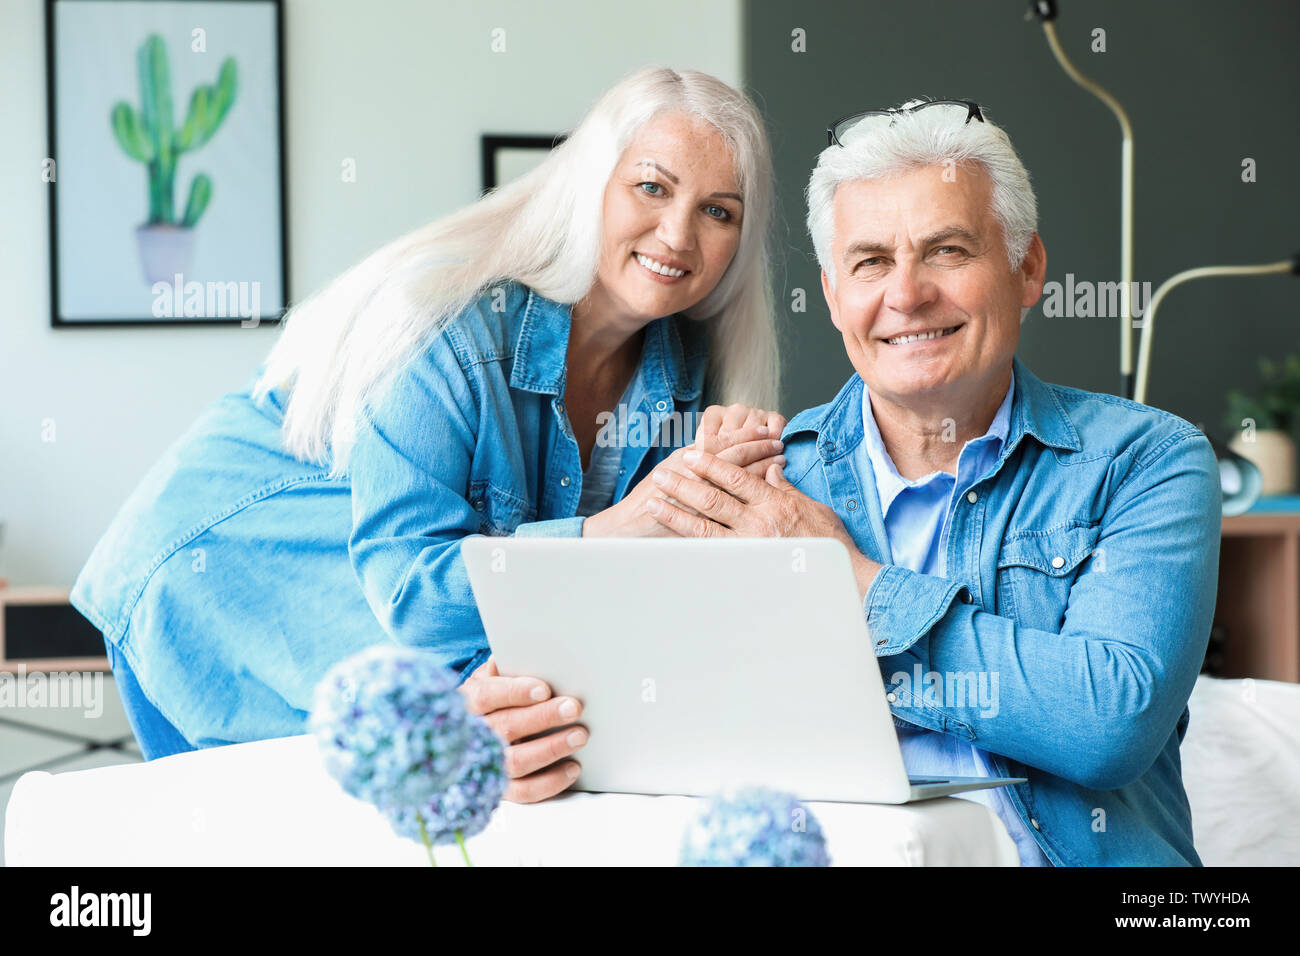 Portrait of happy mature couple with laptop at home - Stock Image